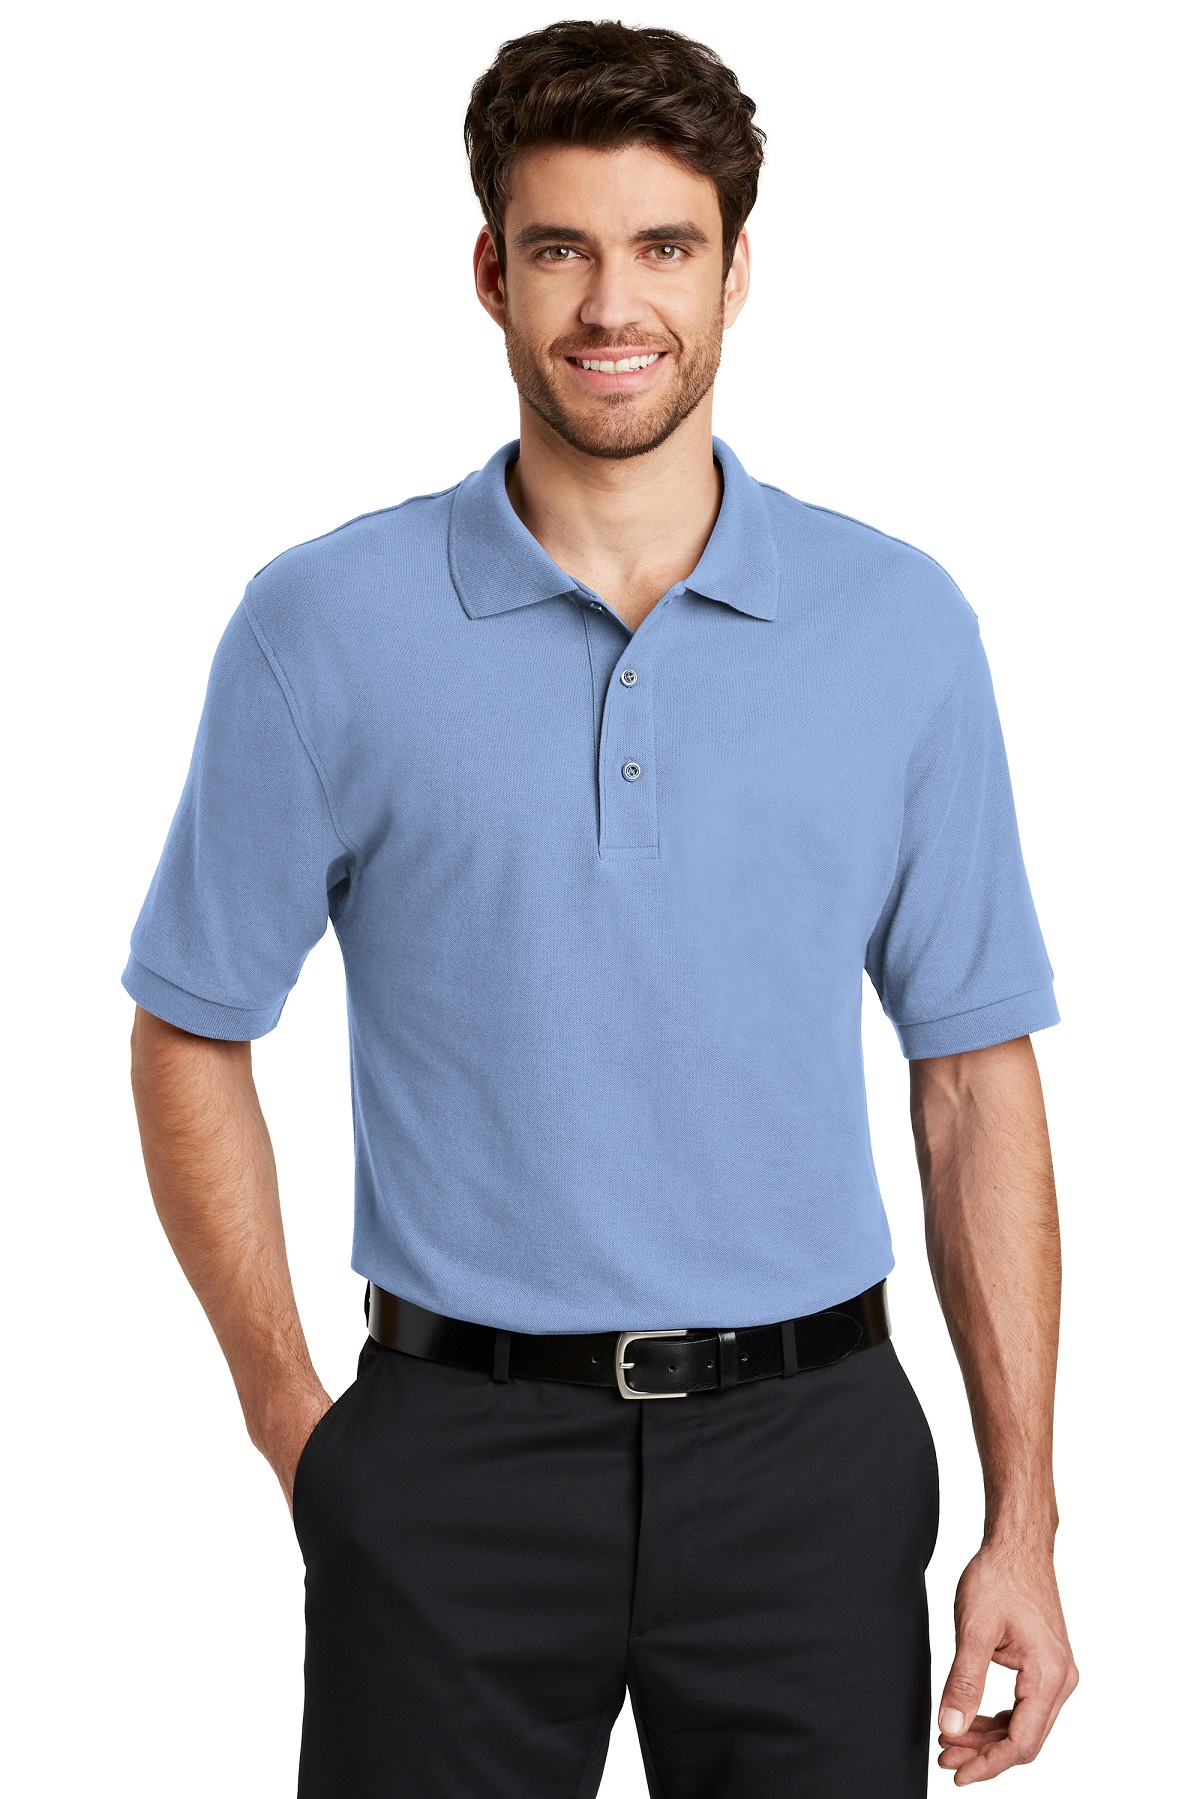 Port Authority Embroidered Men's TALL Silk Touch Polo